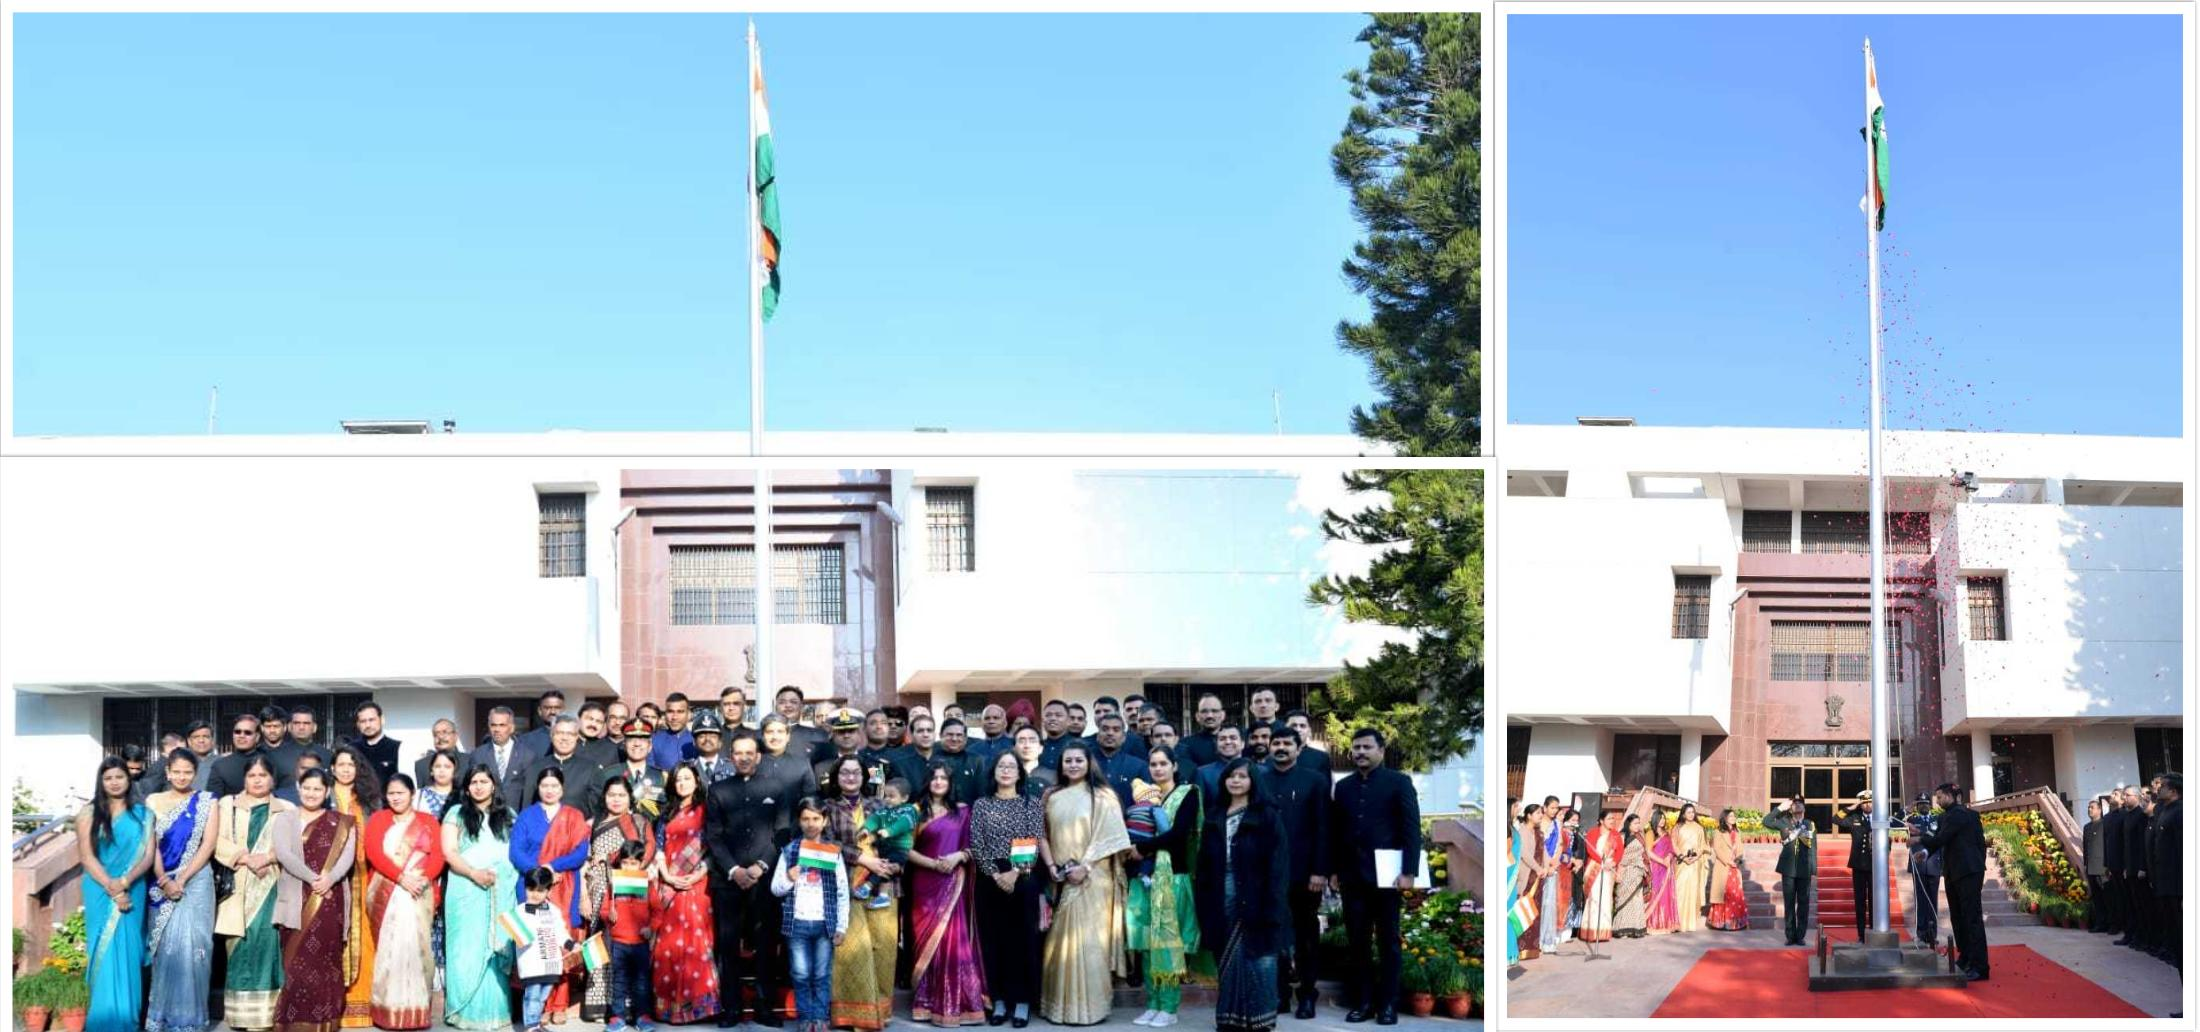 Welcome to High Commission of India, Islamabad, Pakistan